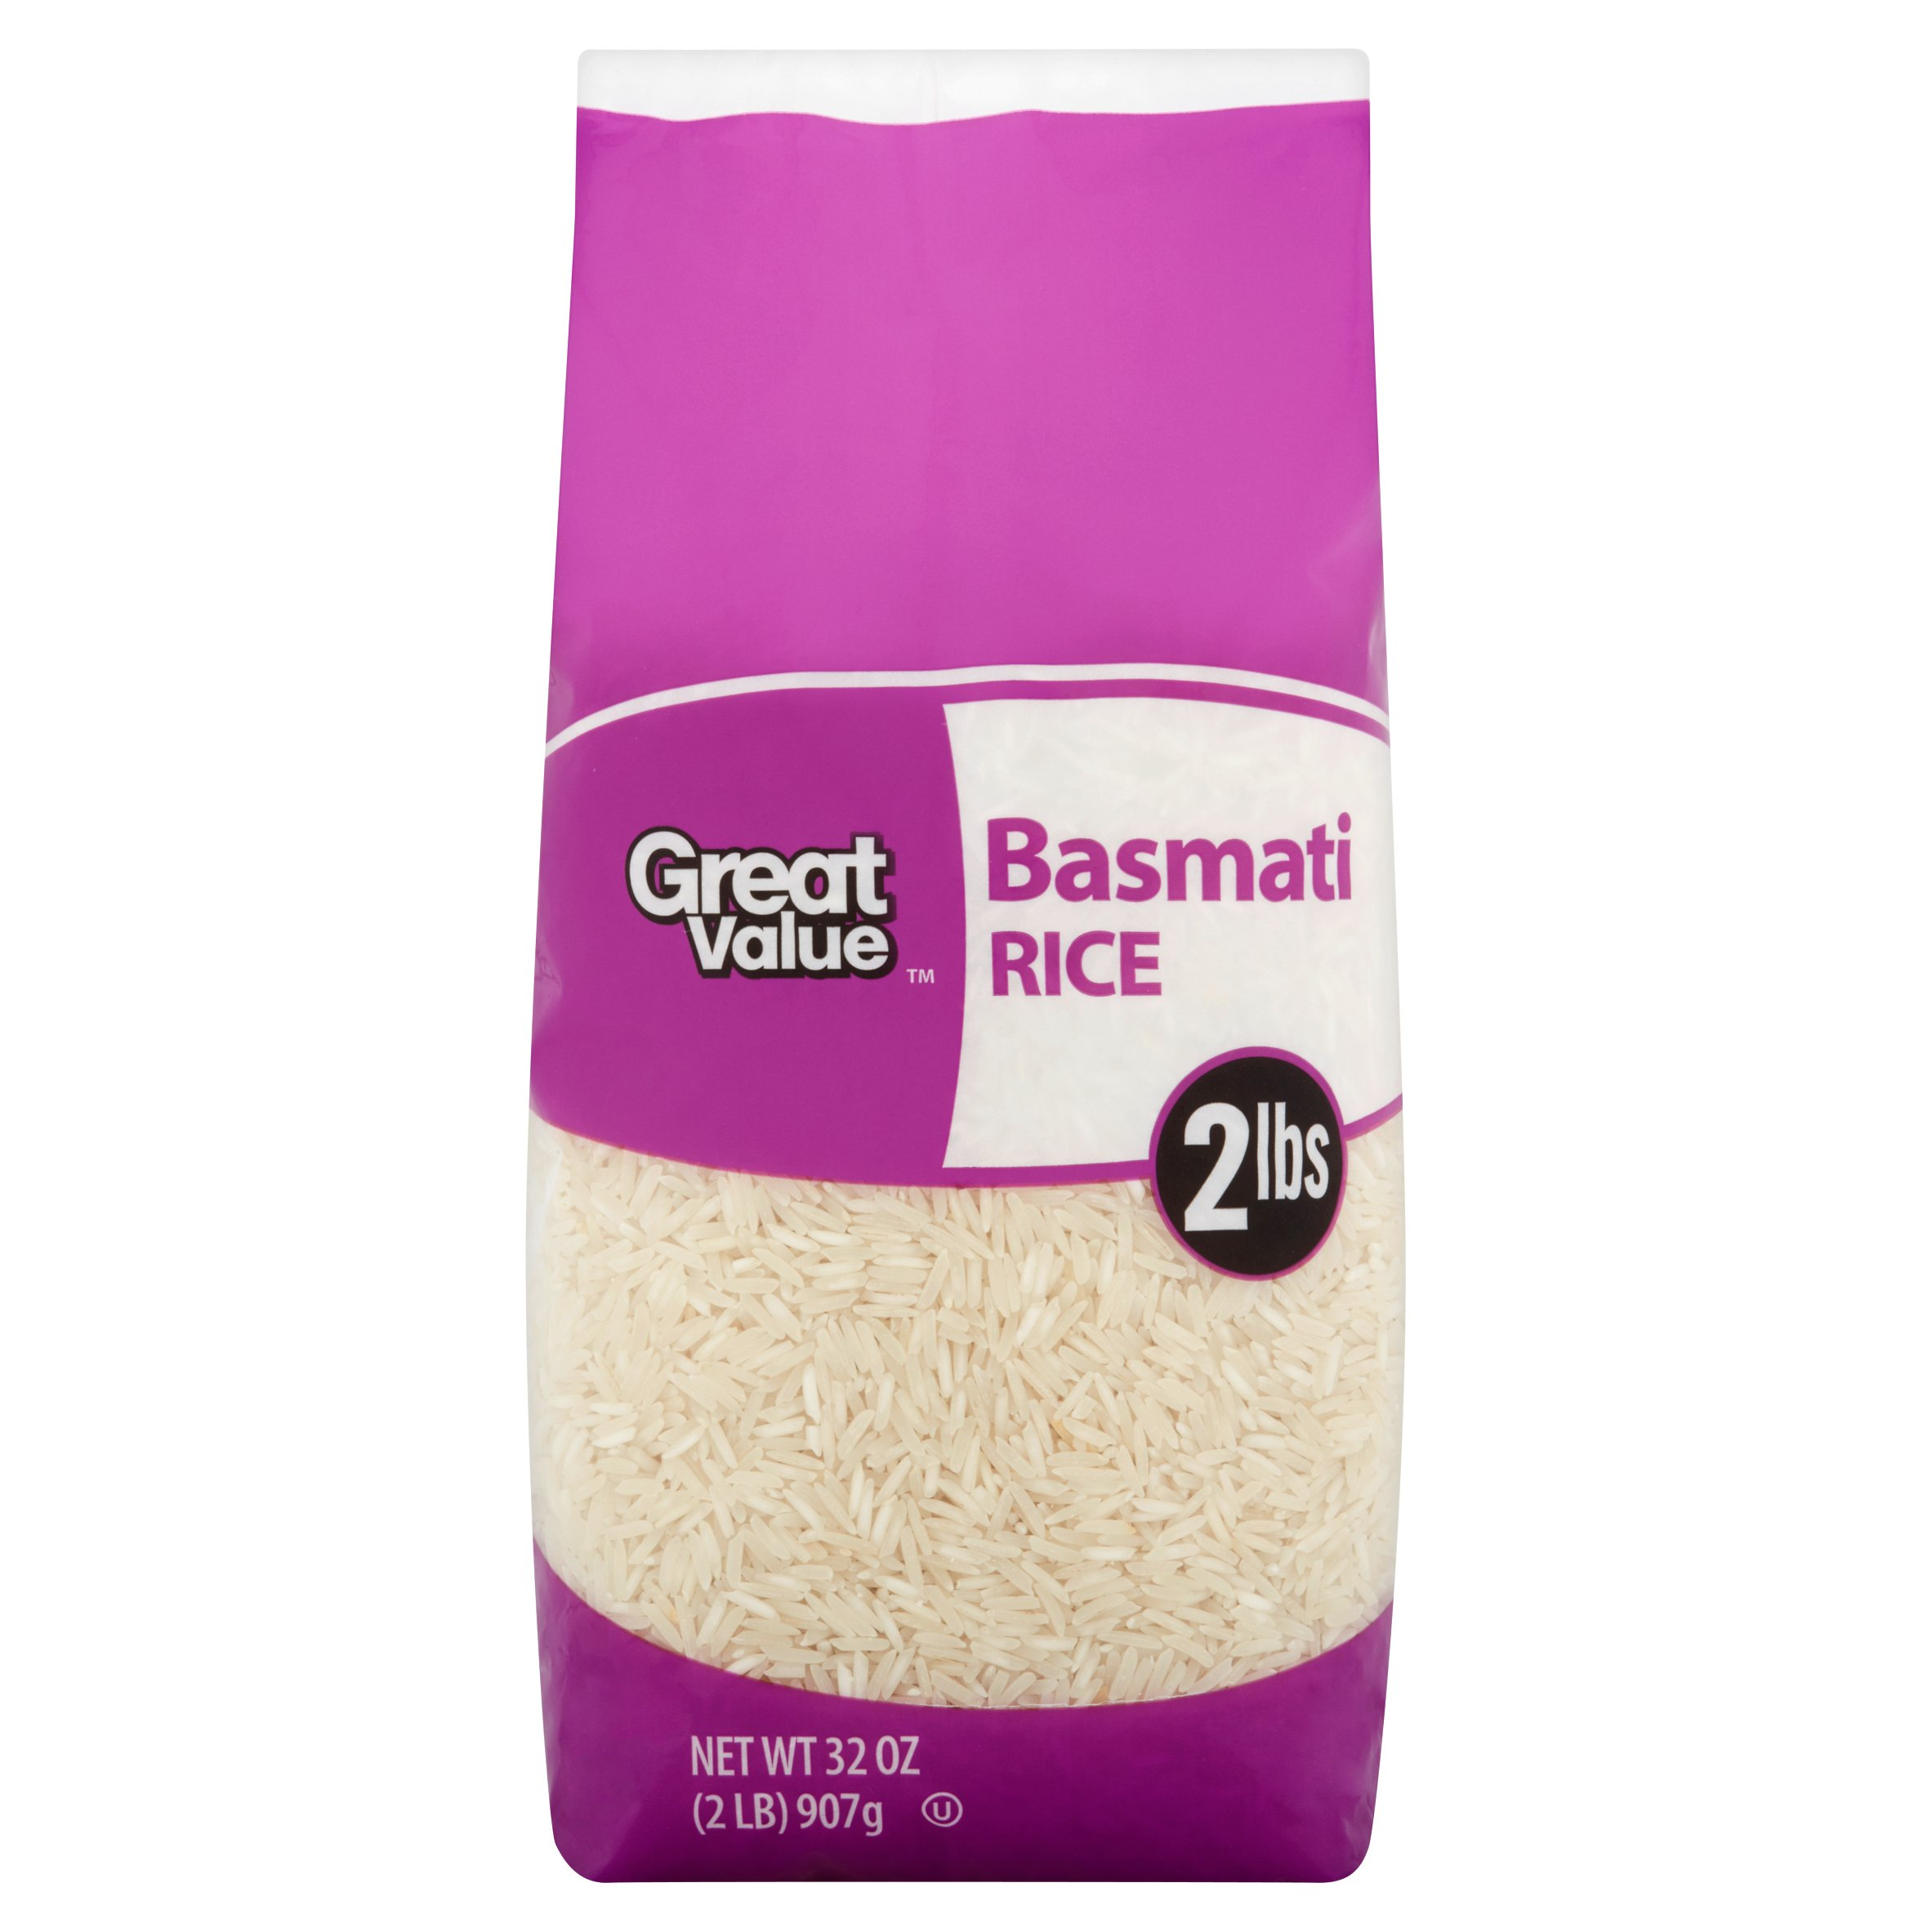 Great Value Basmati Rice, 2 lb by Wal-Mart Stores, Inc.